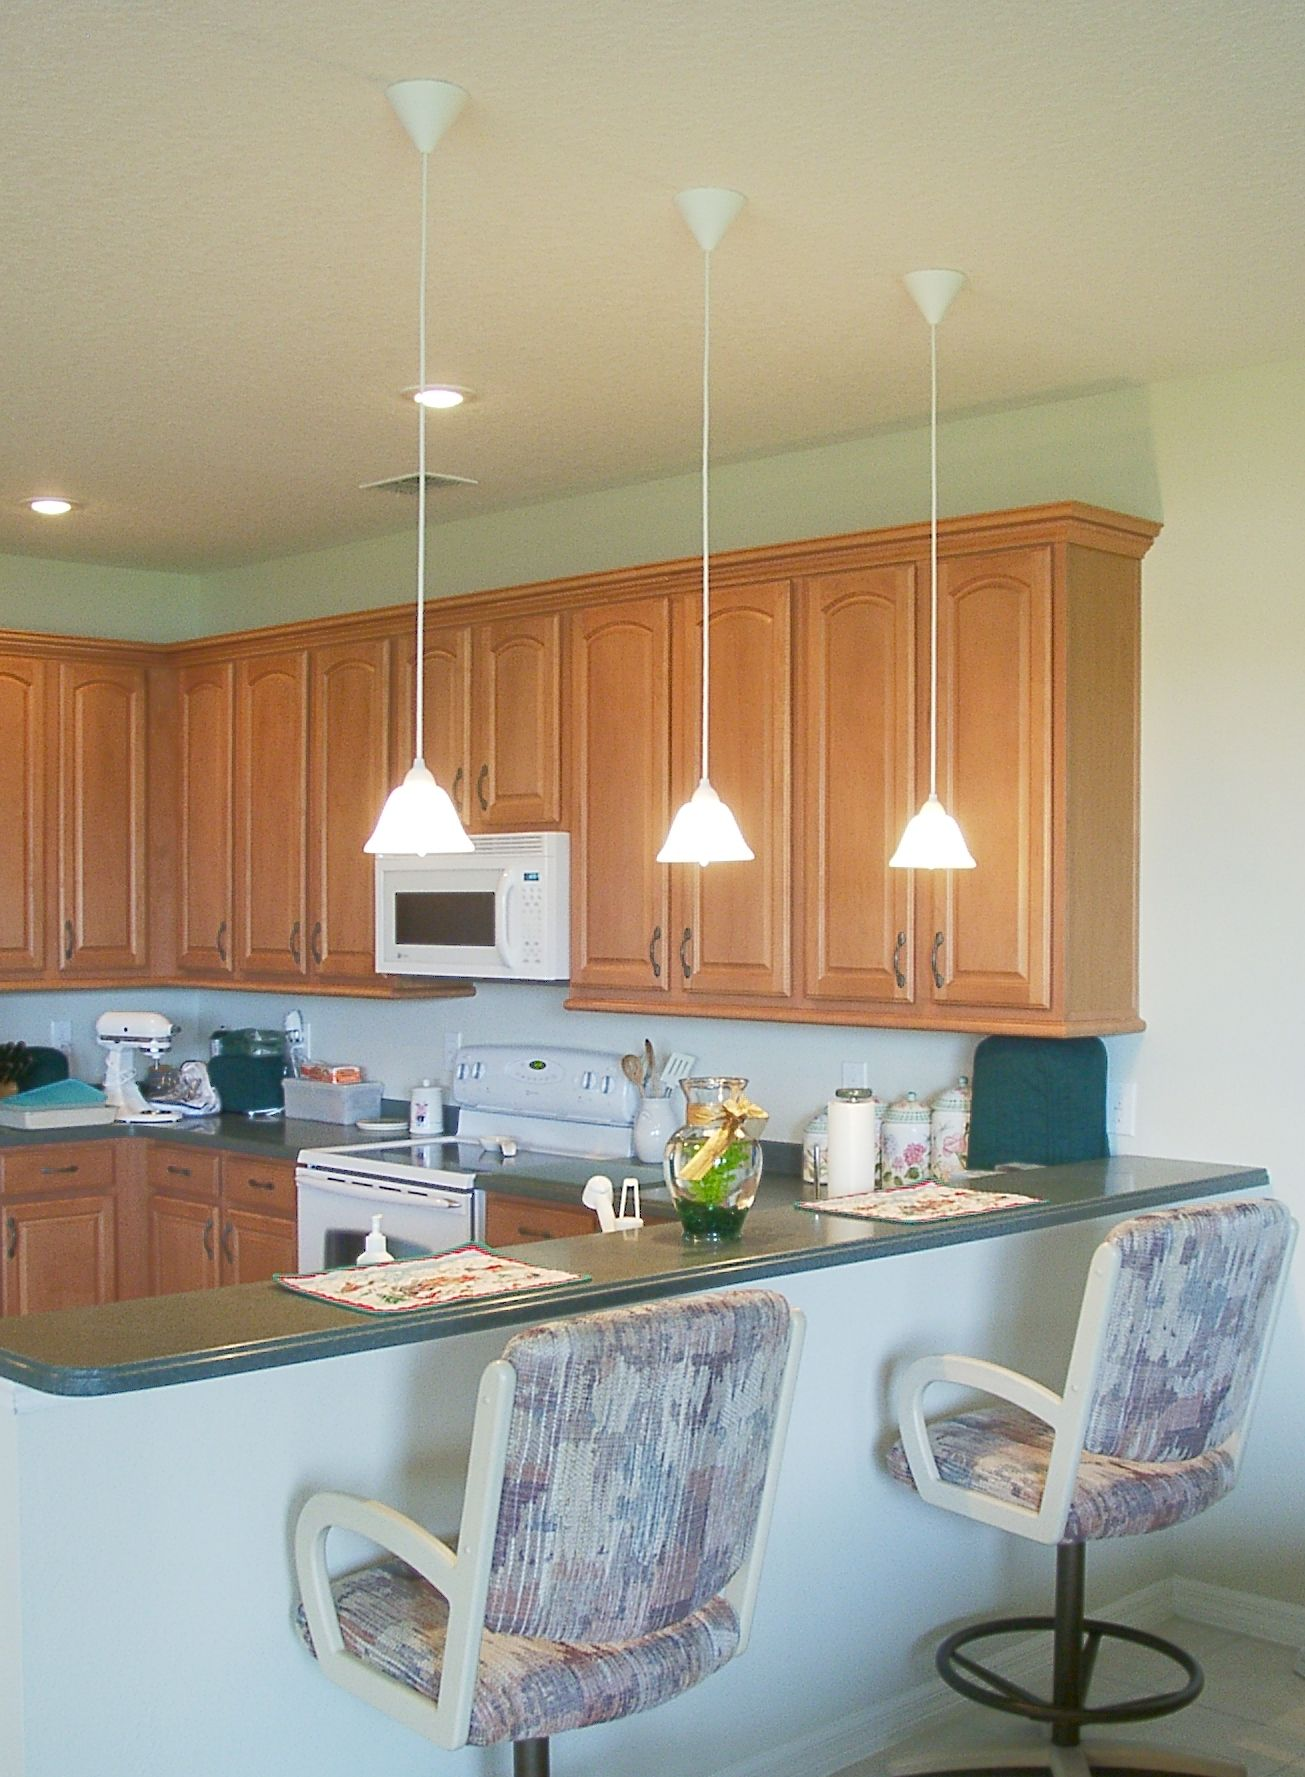 hang lights over kitchen counter   Home Ideas ...